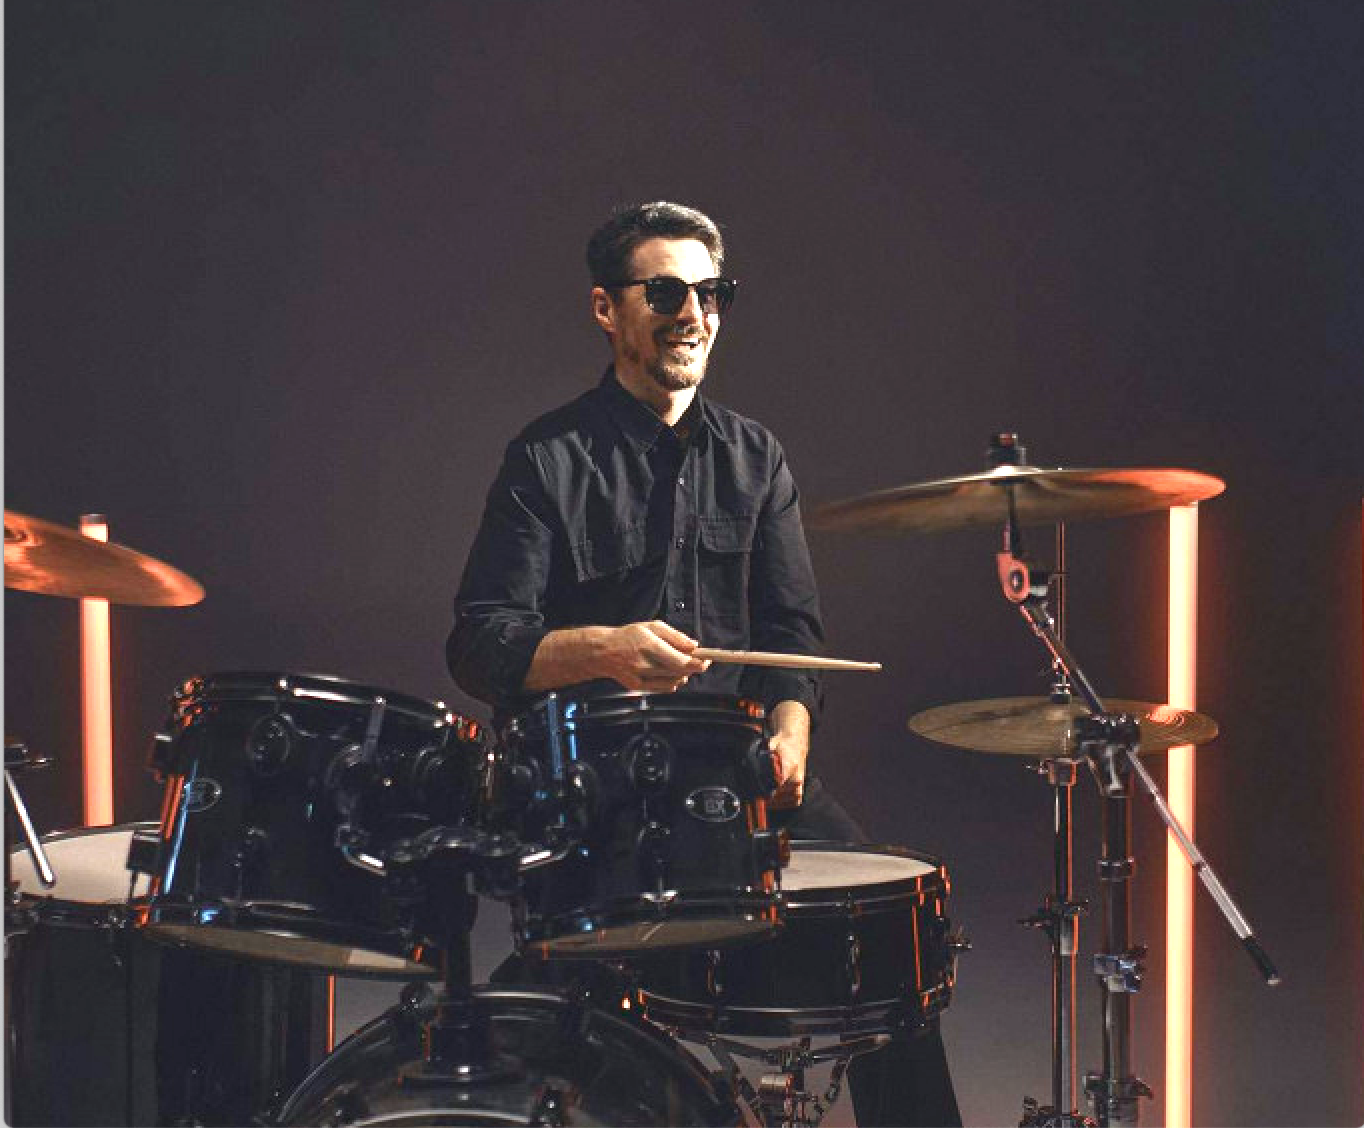 Musician drummer on SpinaliS chair